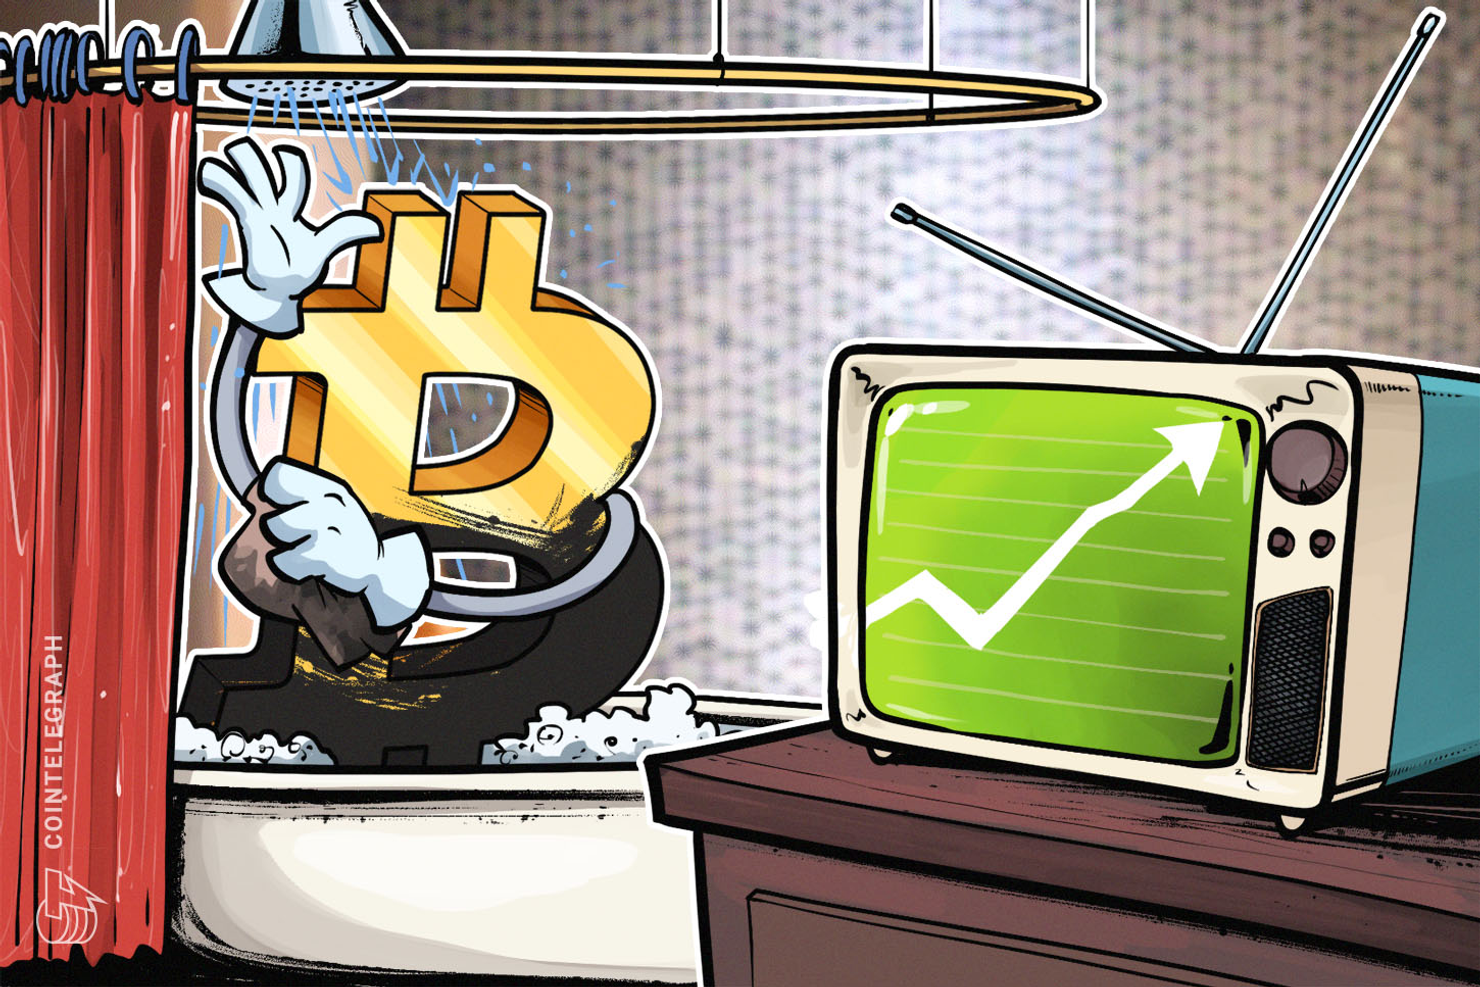 Bitcoin Network Hash Rate Mysteriously Flash Crashes by 40%